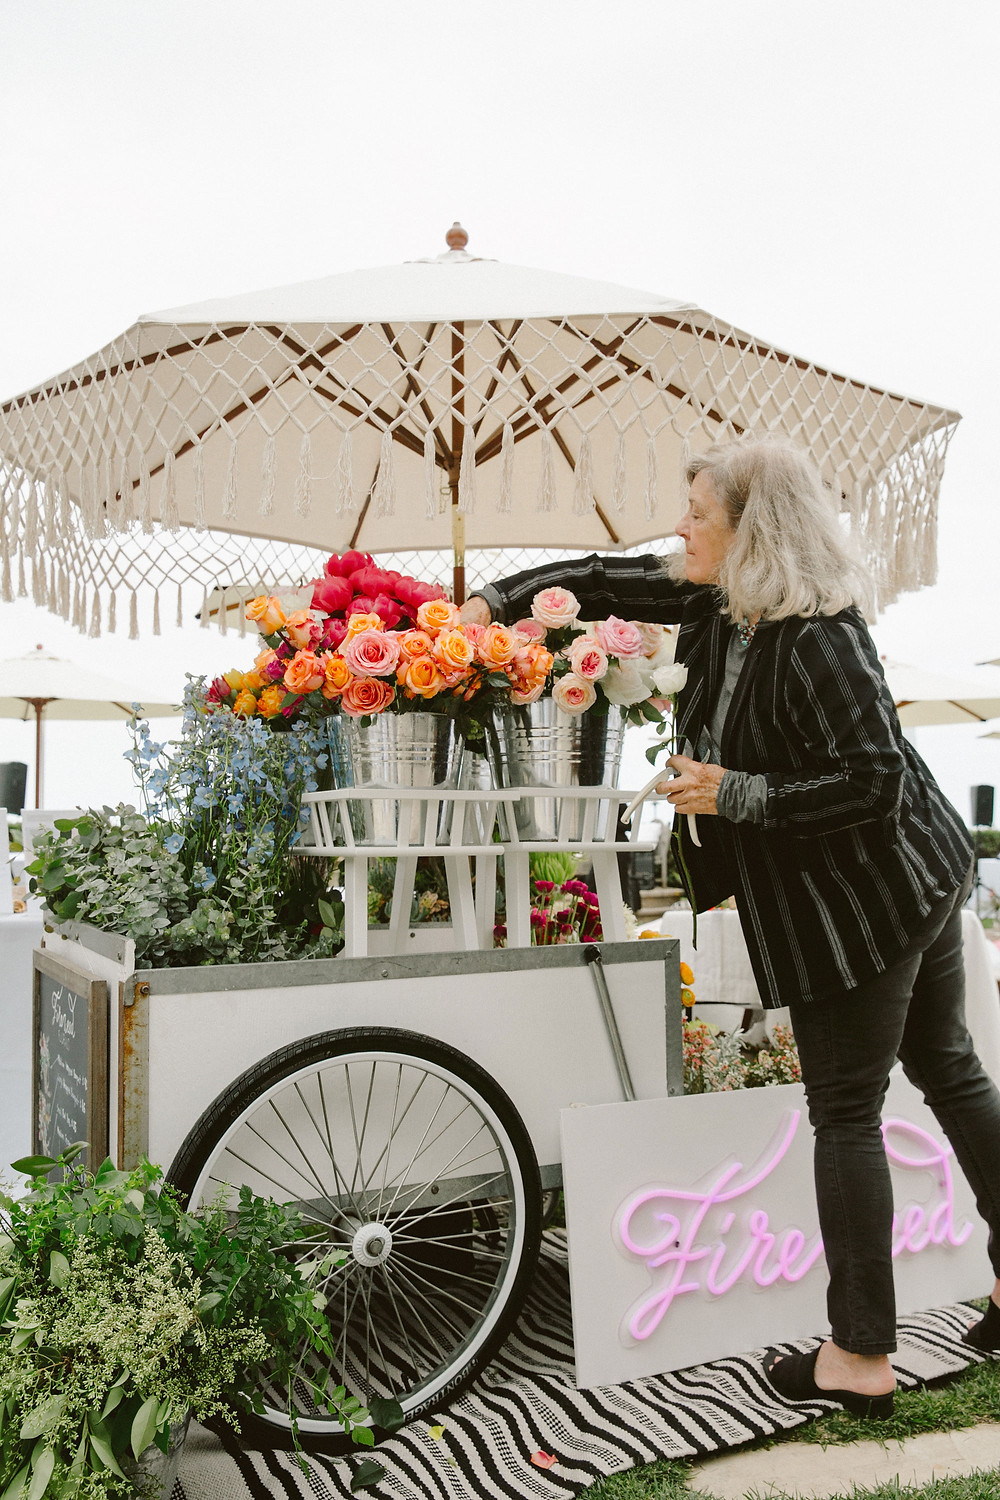 Fireweed Flower Cart with flowers and a neon pink sign